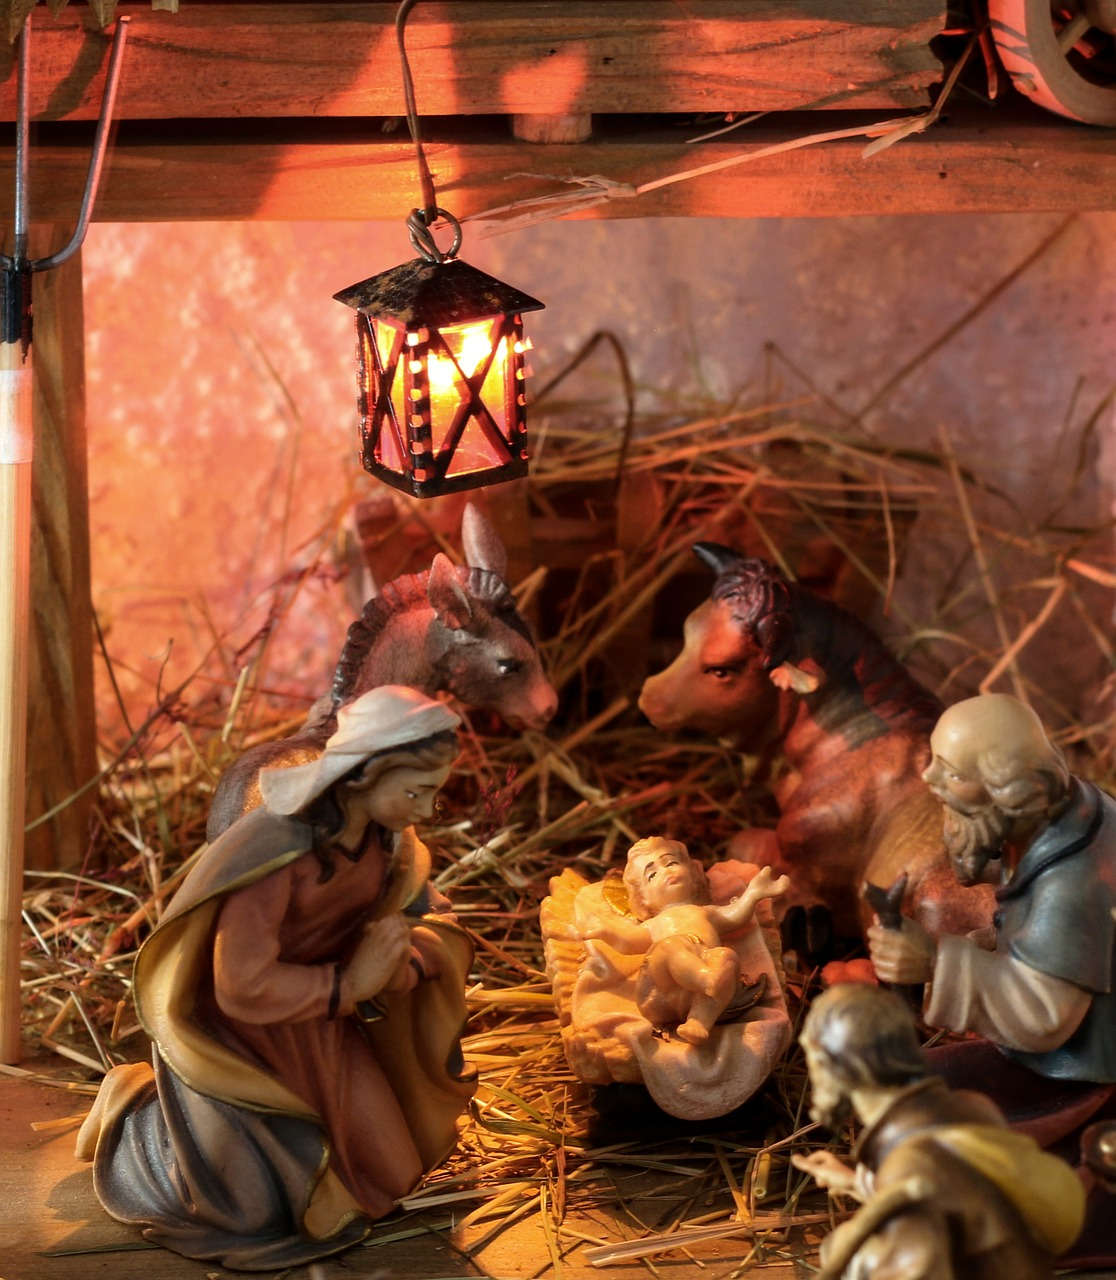 Christmas - The Reason For Hope - The Other Side of Darkness